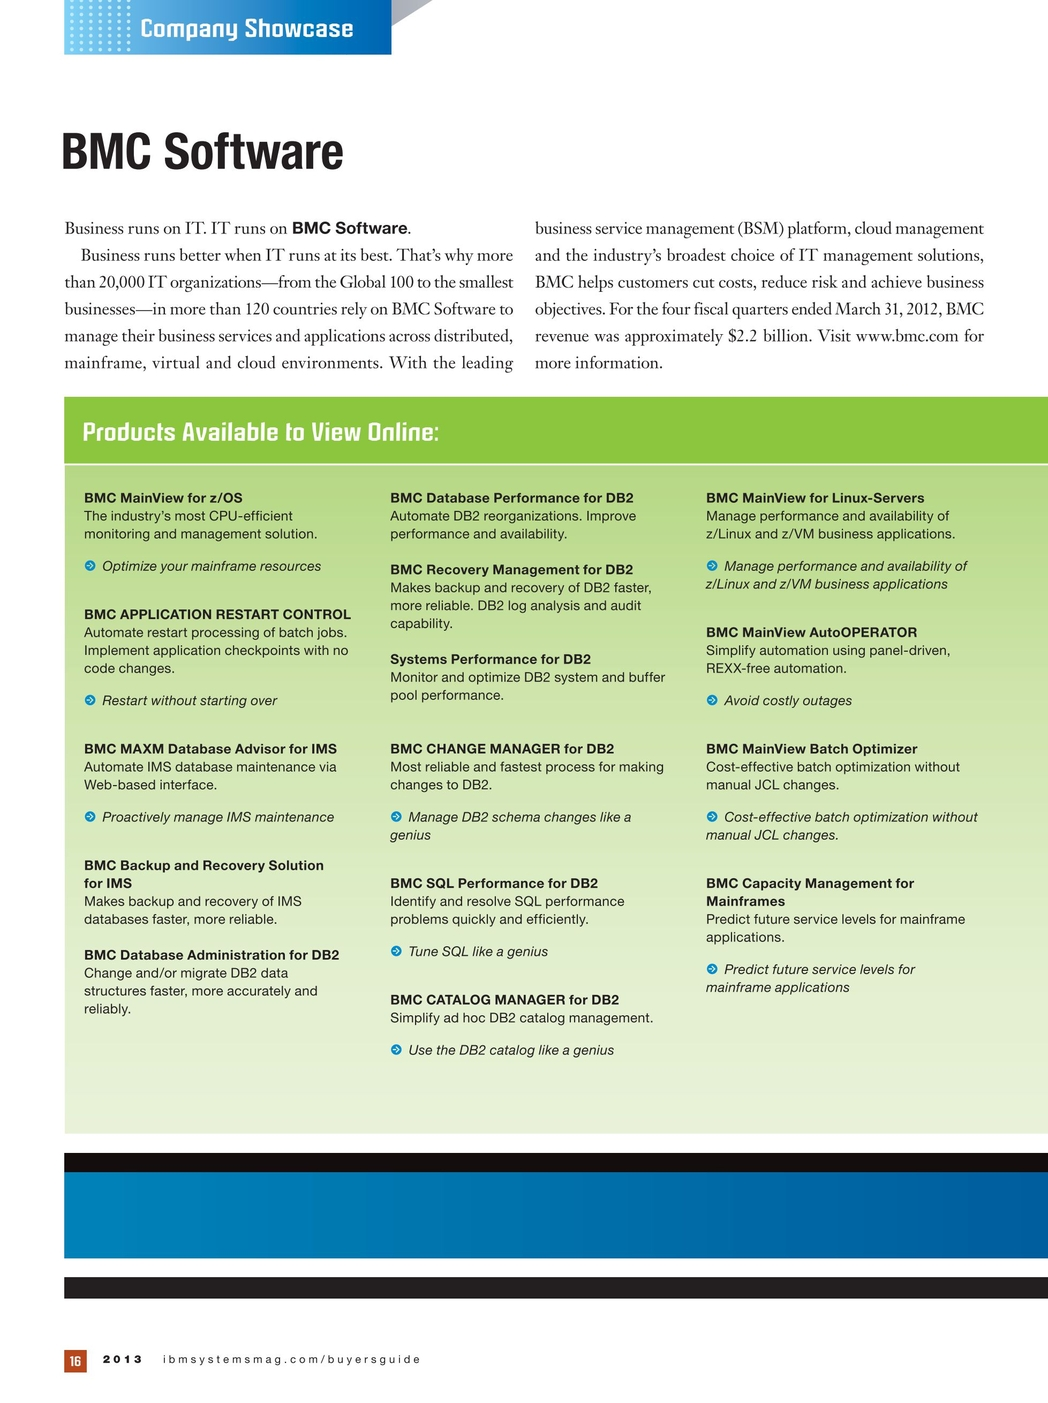 IBM Systems Magazine, Mainframe Edition - 2013 Buyer's Guide